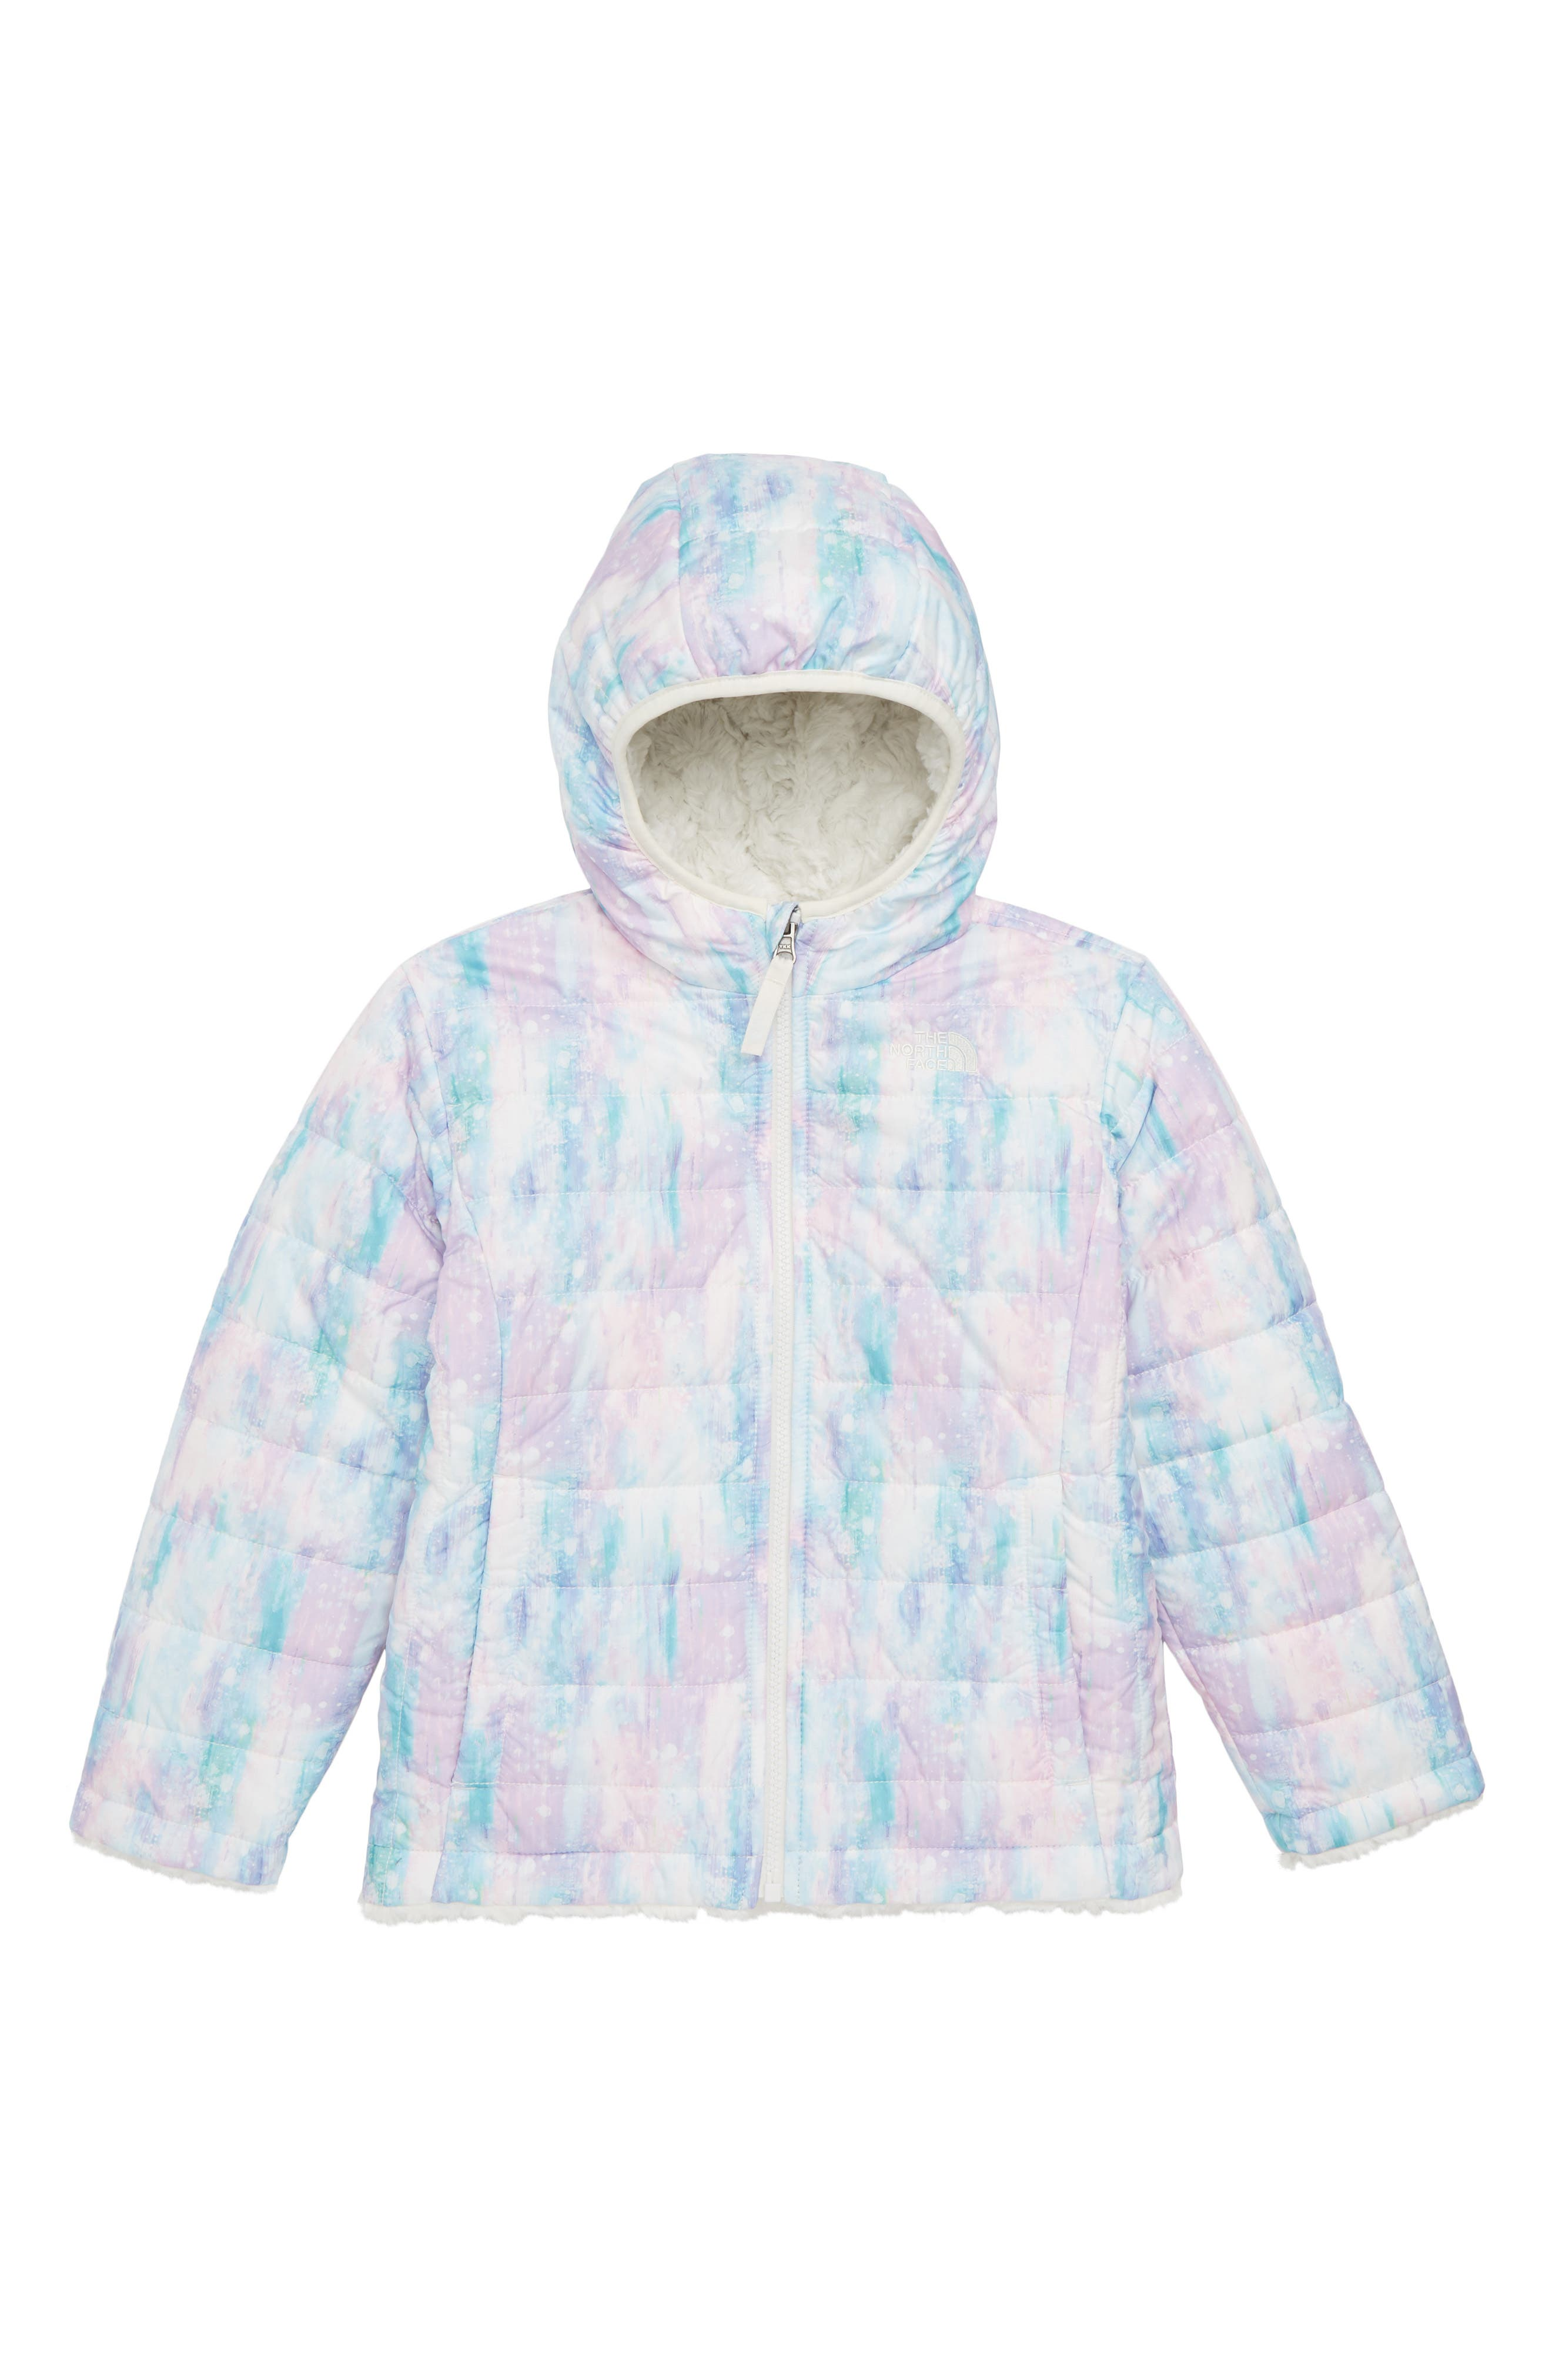 Mossbud Swirl Reversible Jacket,                             Main thumbnail 1, color,                             Purdy Pink Snow Dust Print